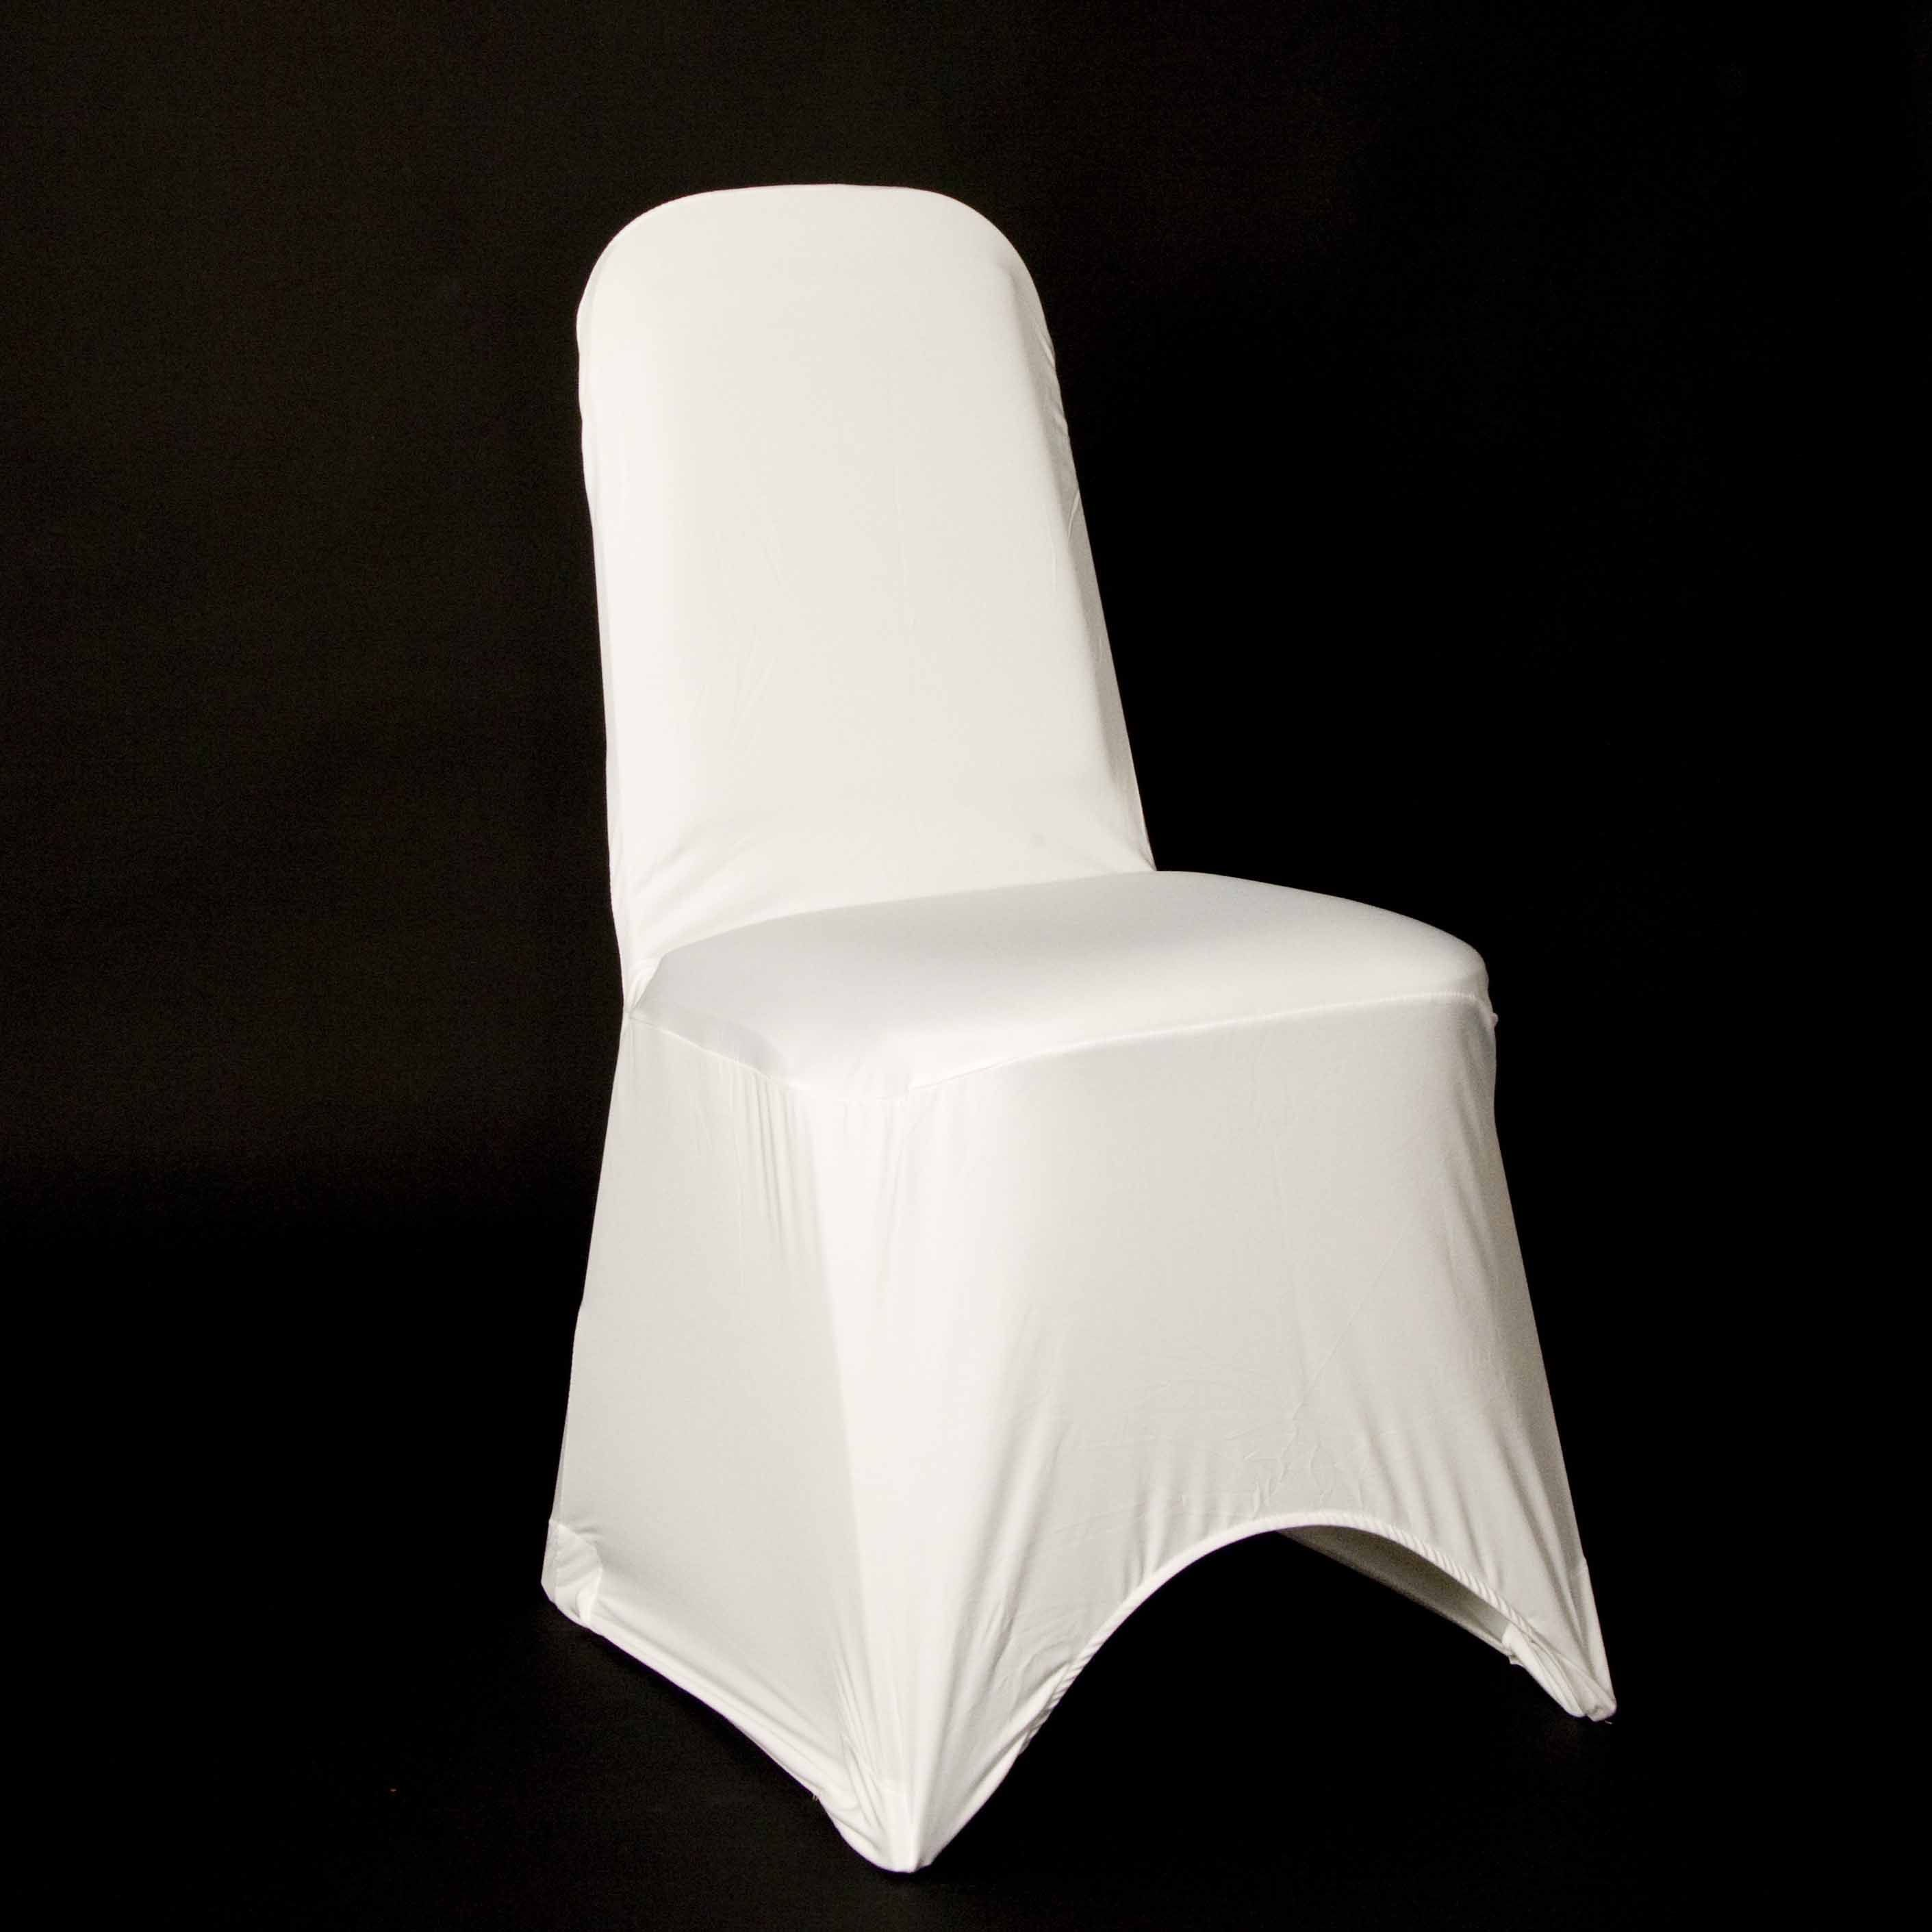 Chair Covers For Square Banquet Chairs